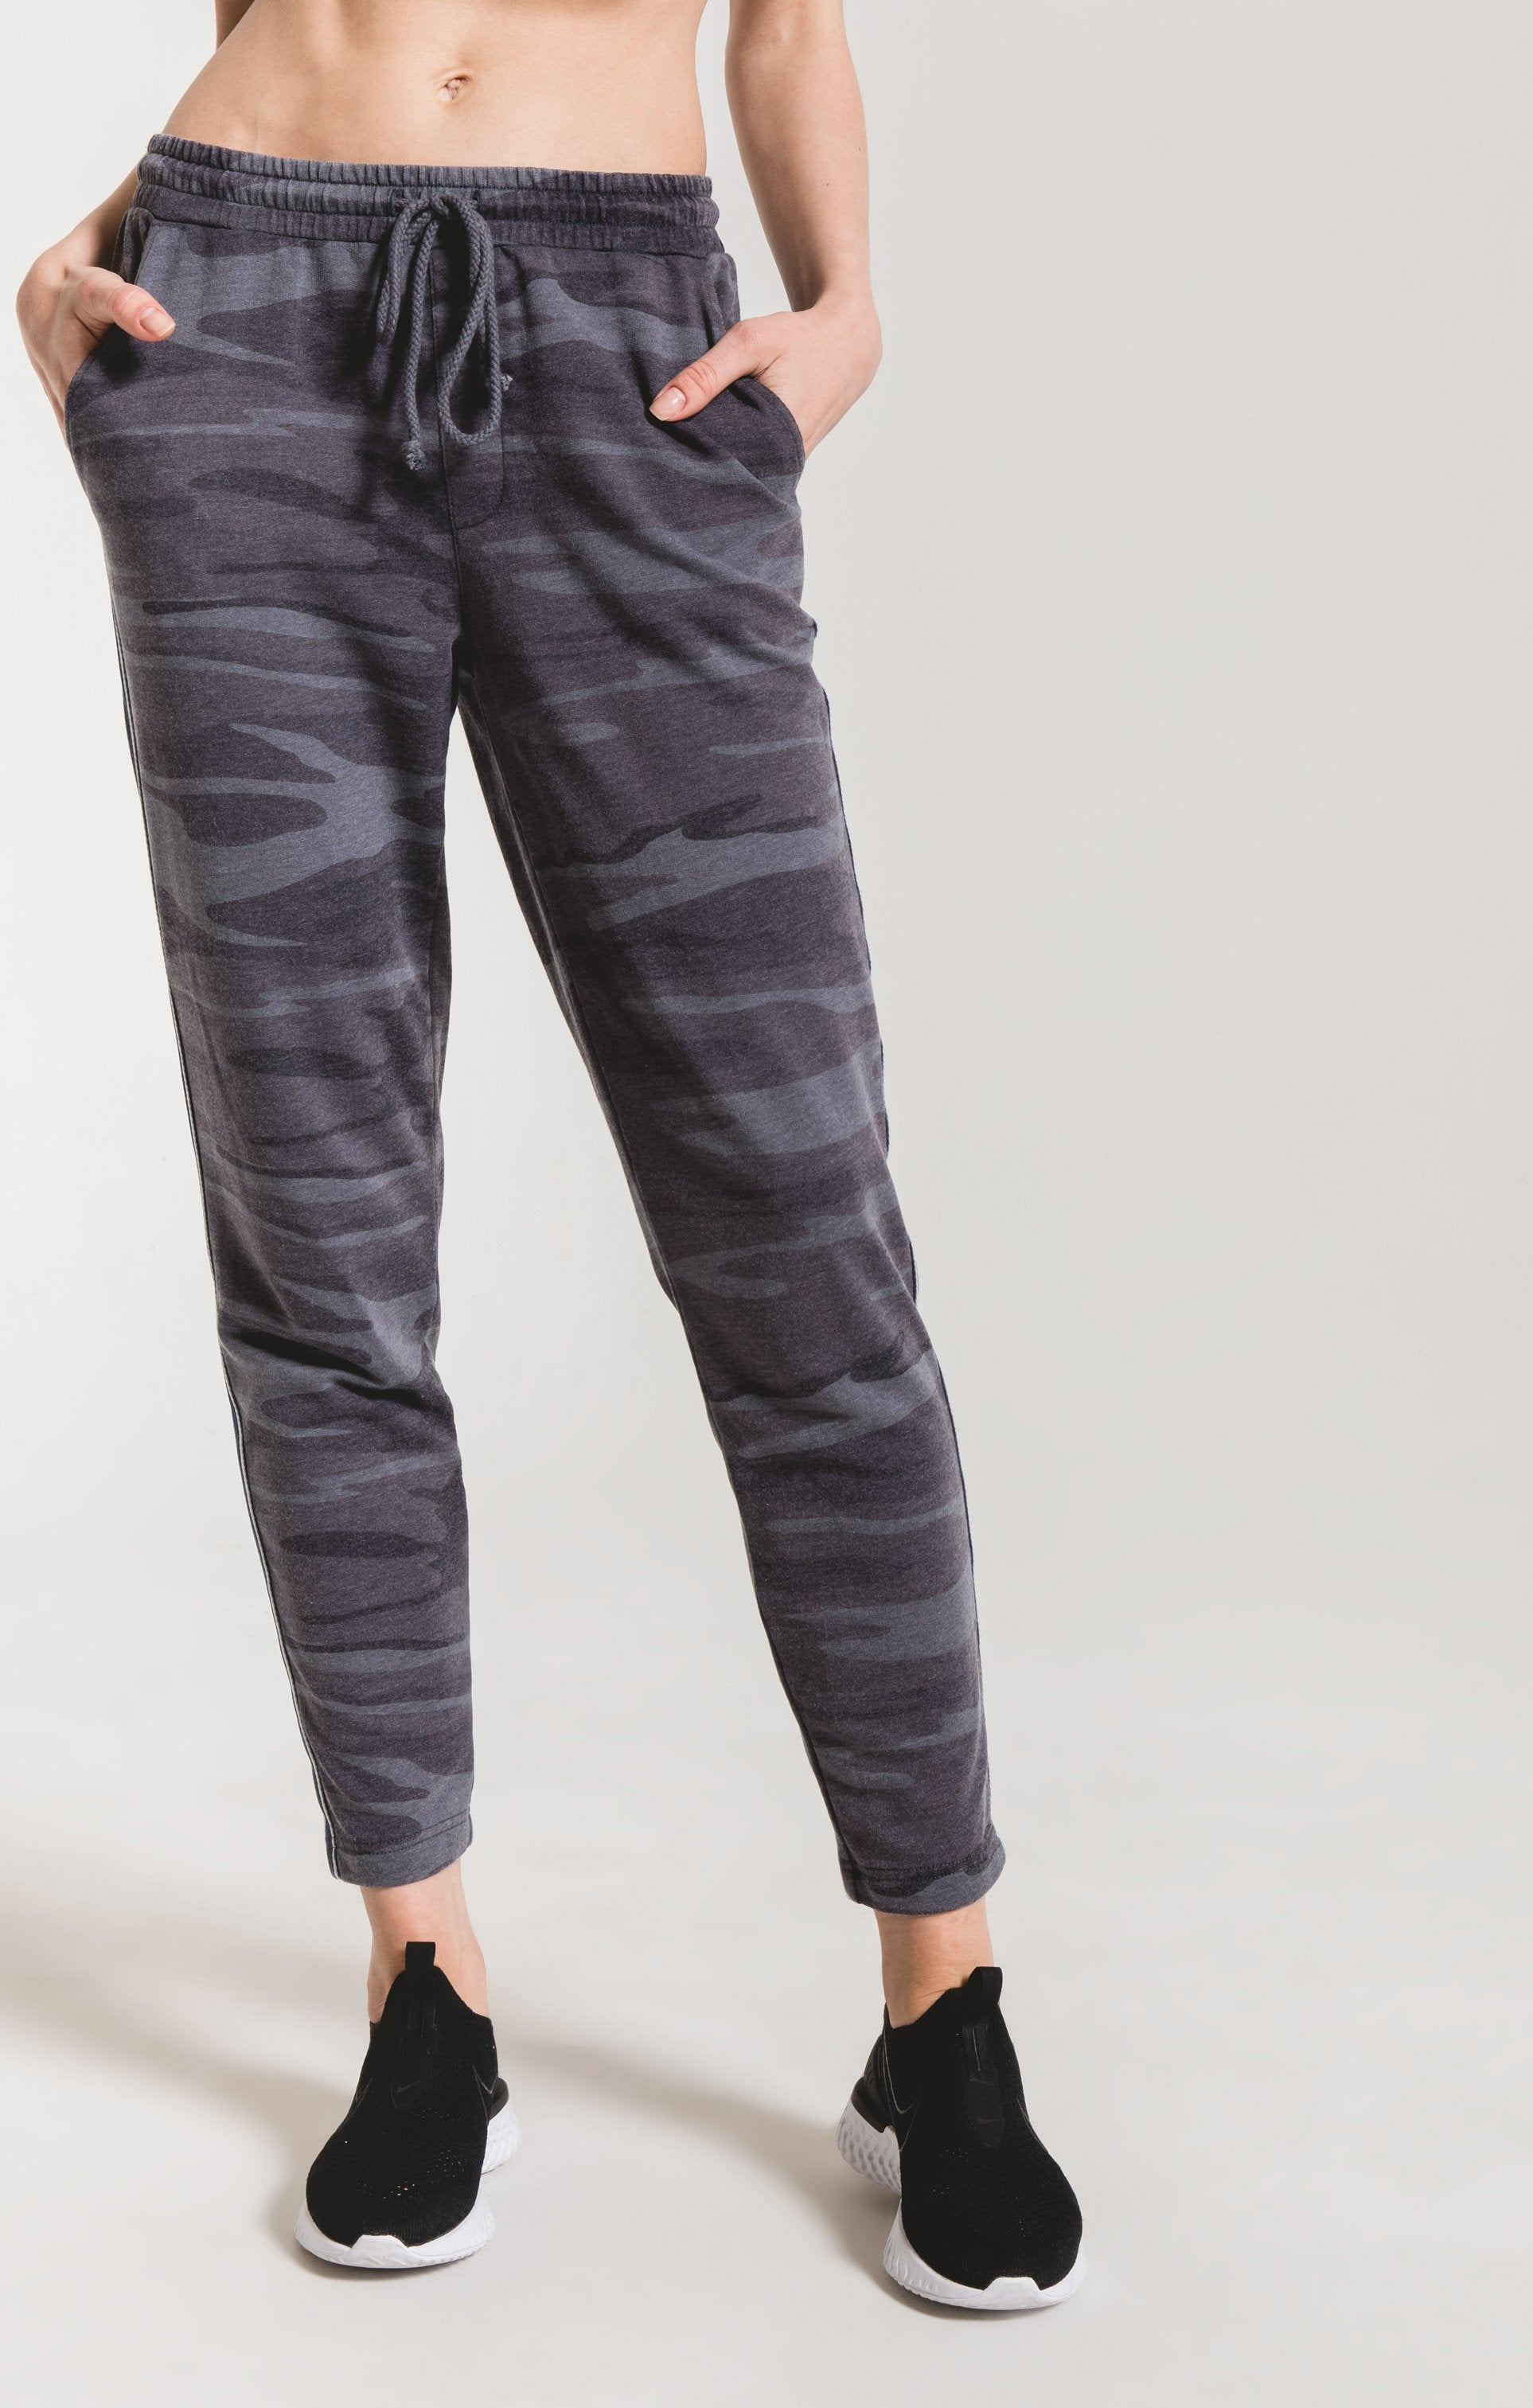 Pants Camo Sporty Jogger Pant Camo Dark Blue